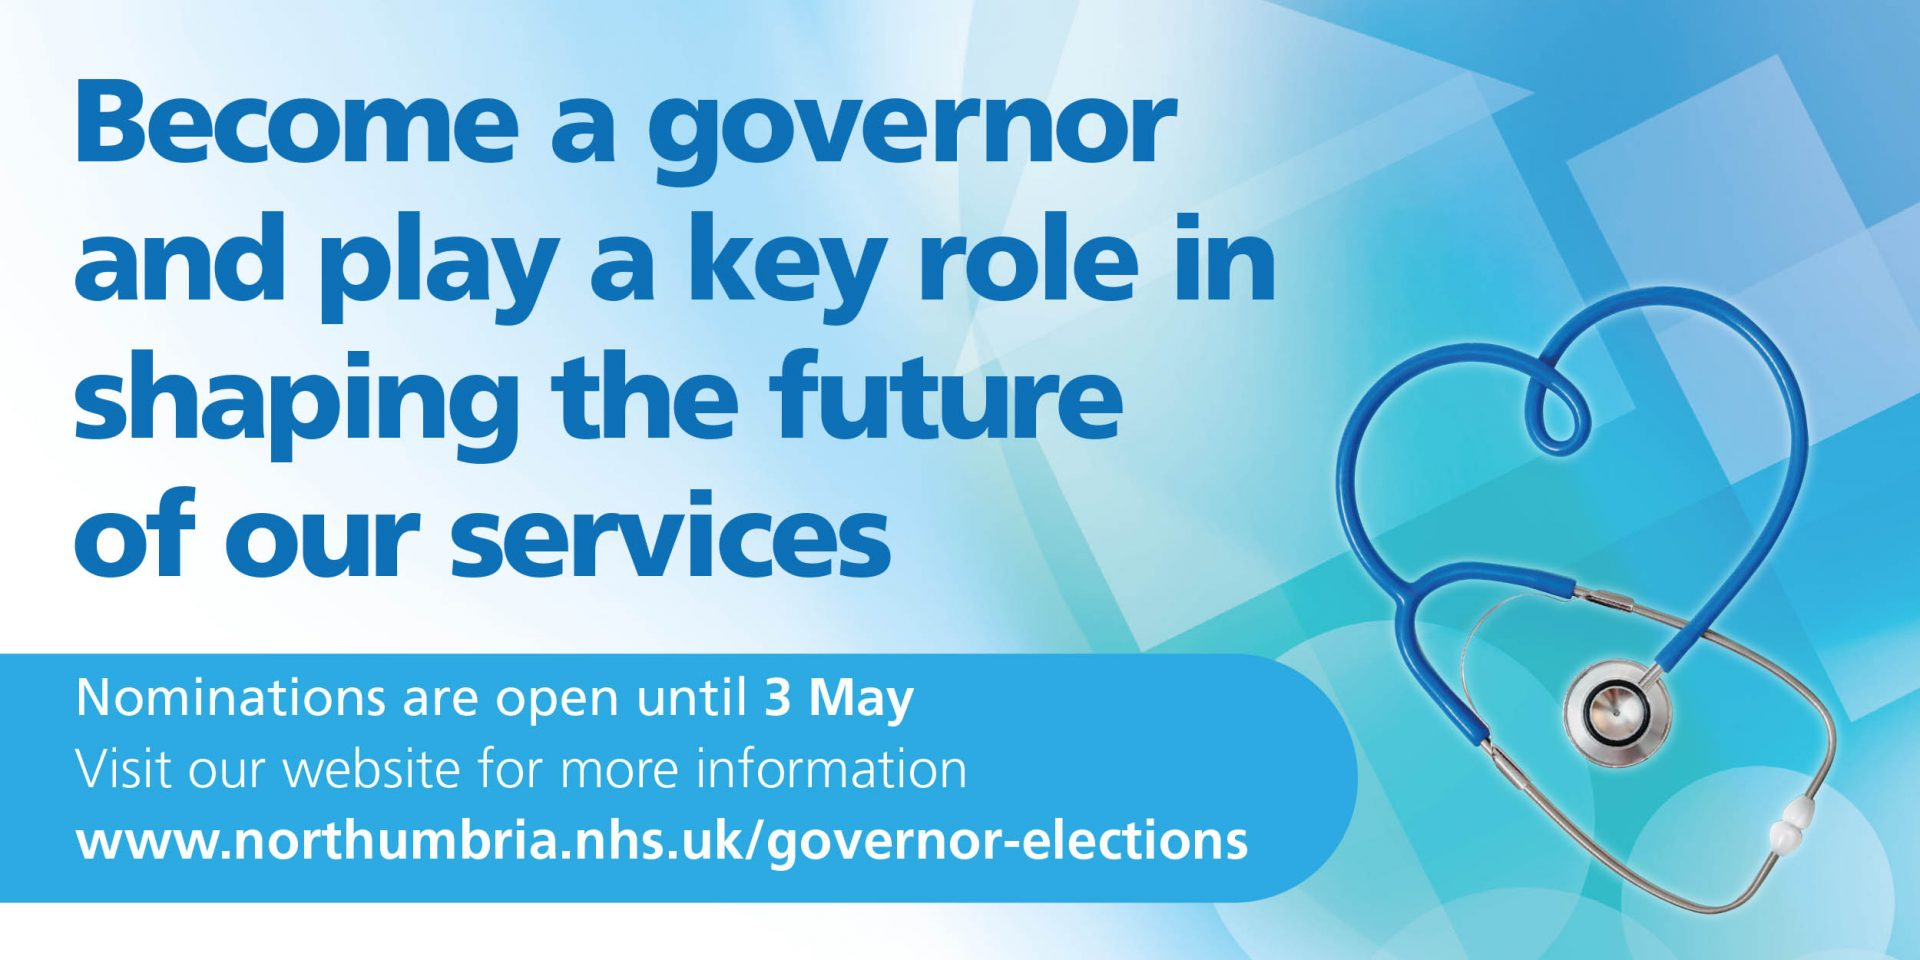 Share your passion for the NHS by becoming a Northumbria public governor